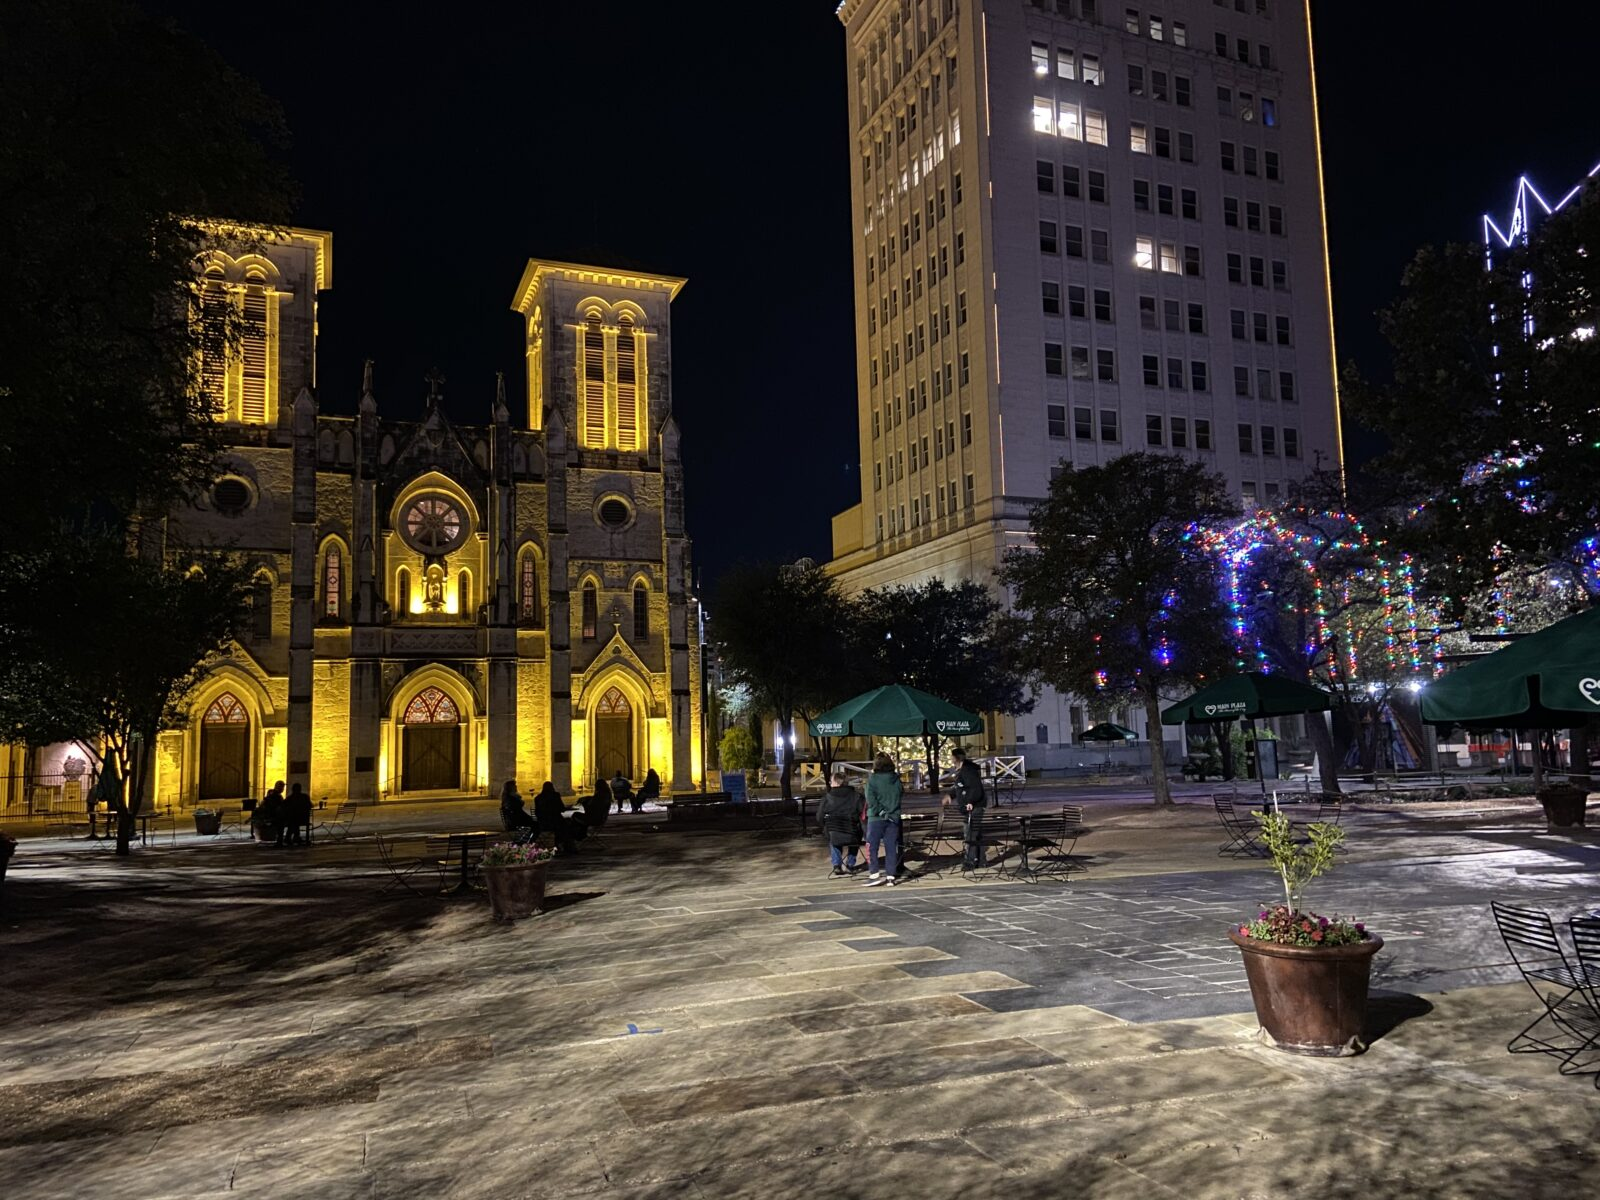 San Fernando Cathedral stick out, but not because of the Christmas lights.